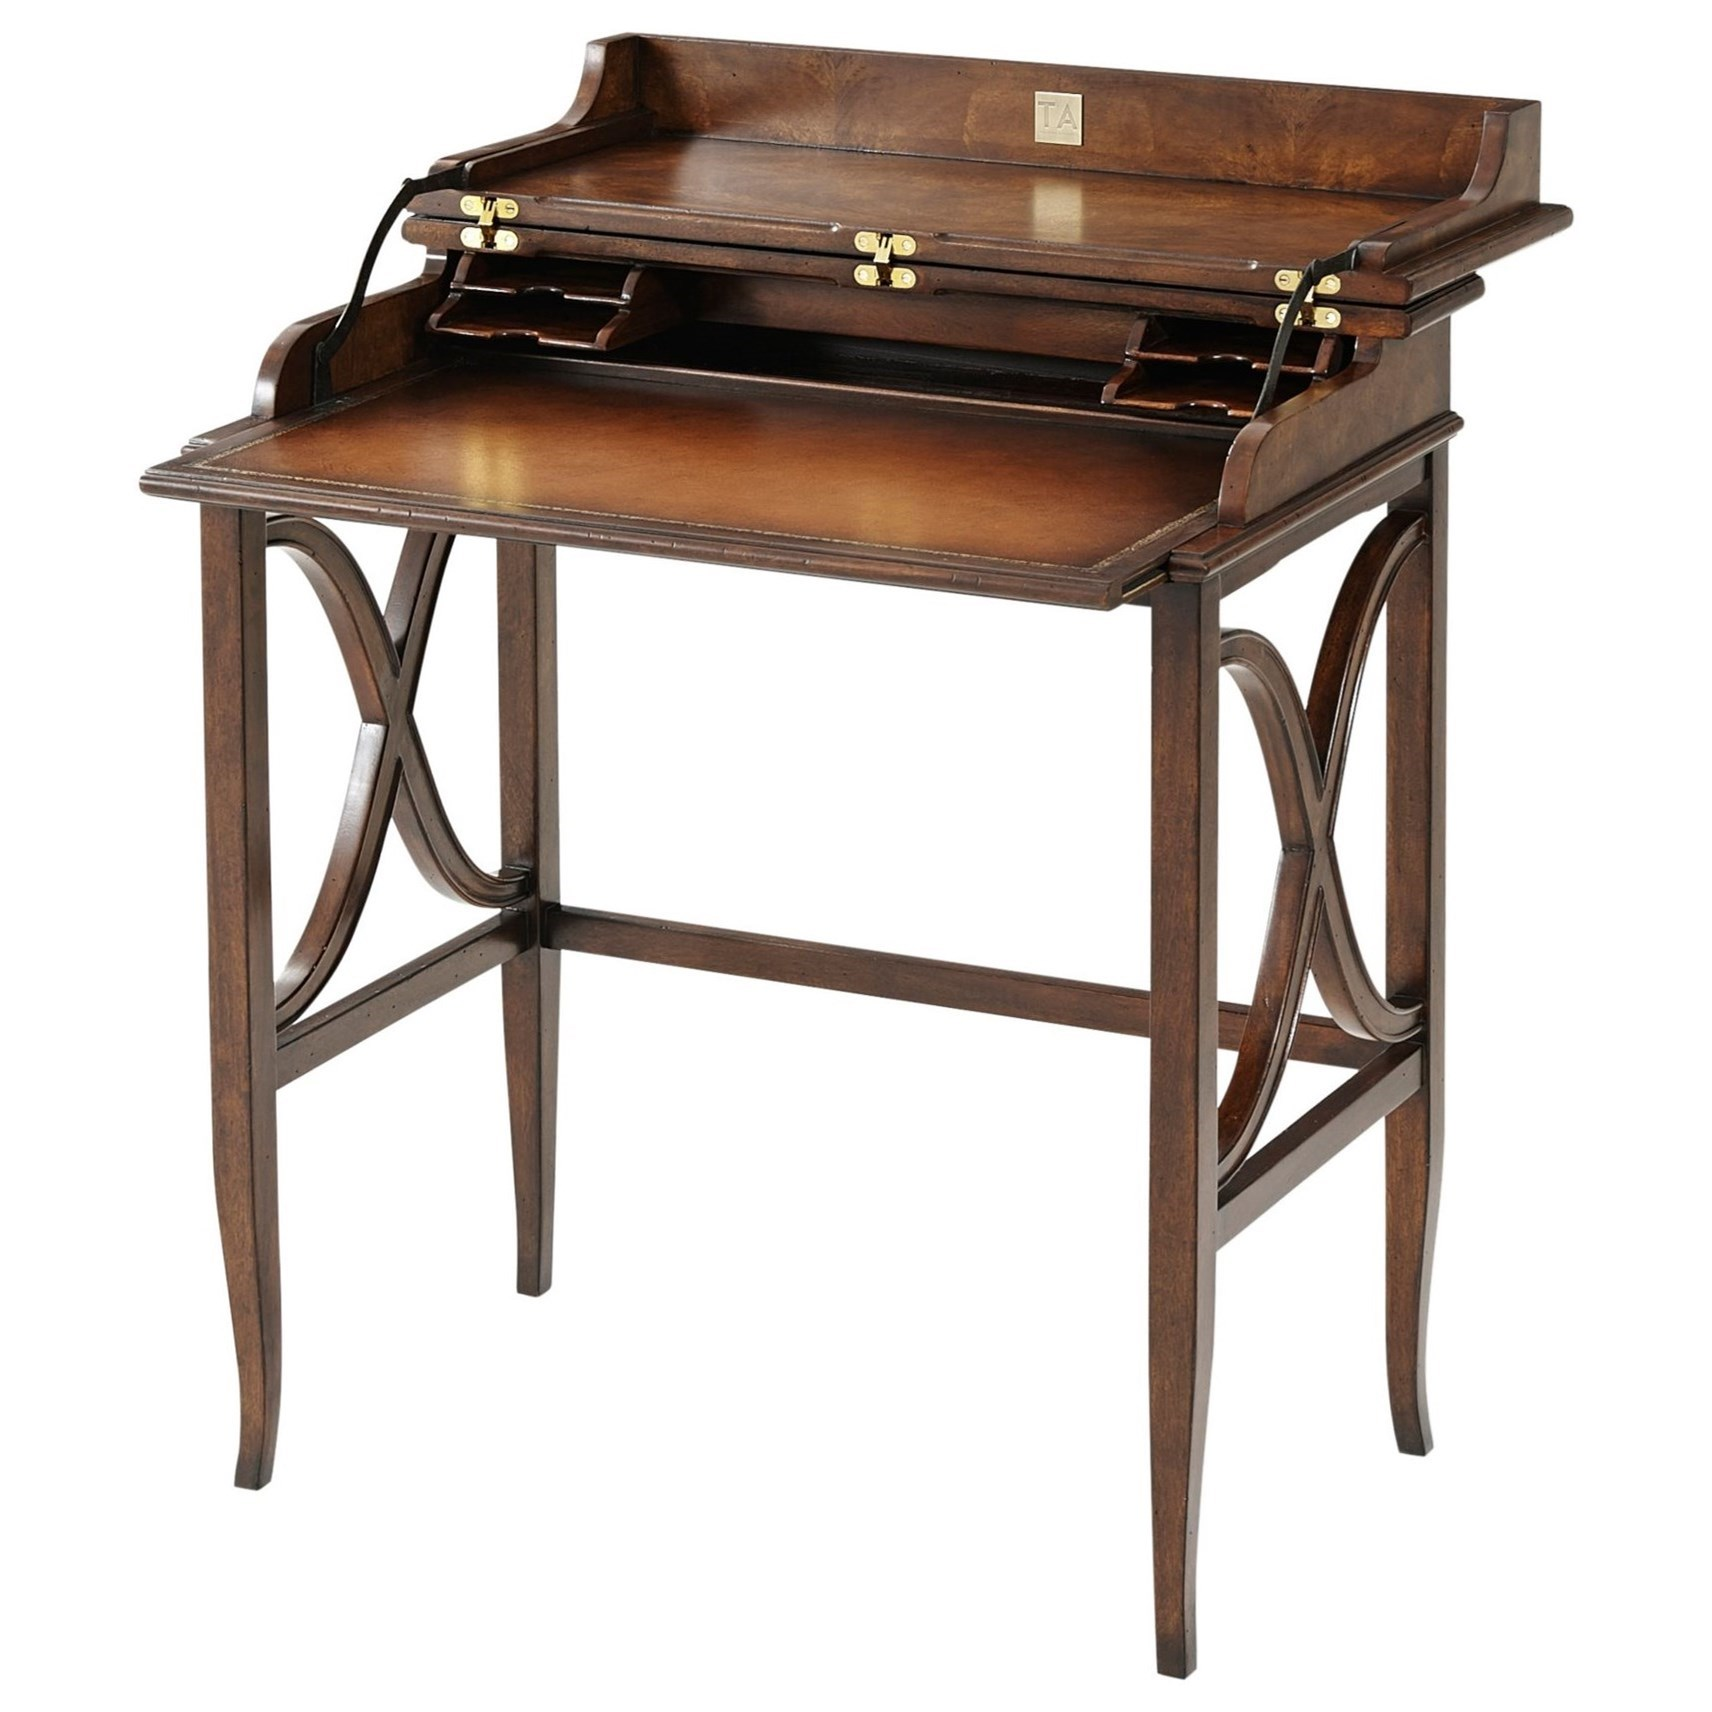 Brooksby Brooksby's Campaign Desk by Theodore Alexander at Baer's Furniture